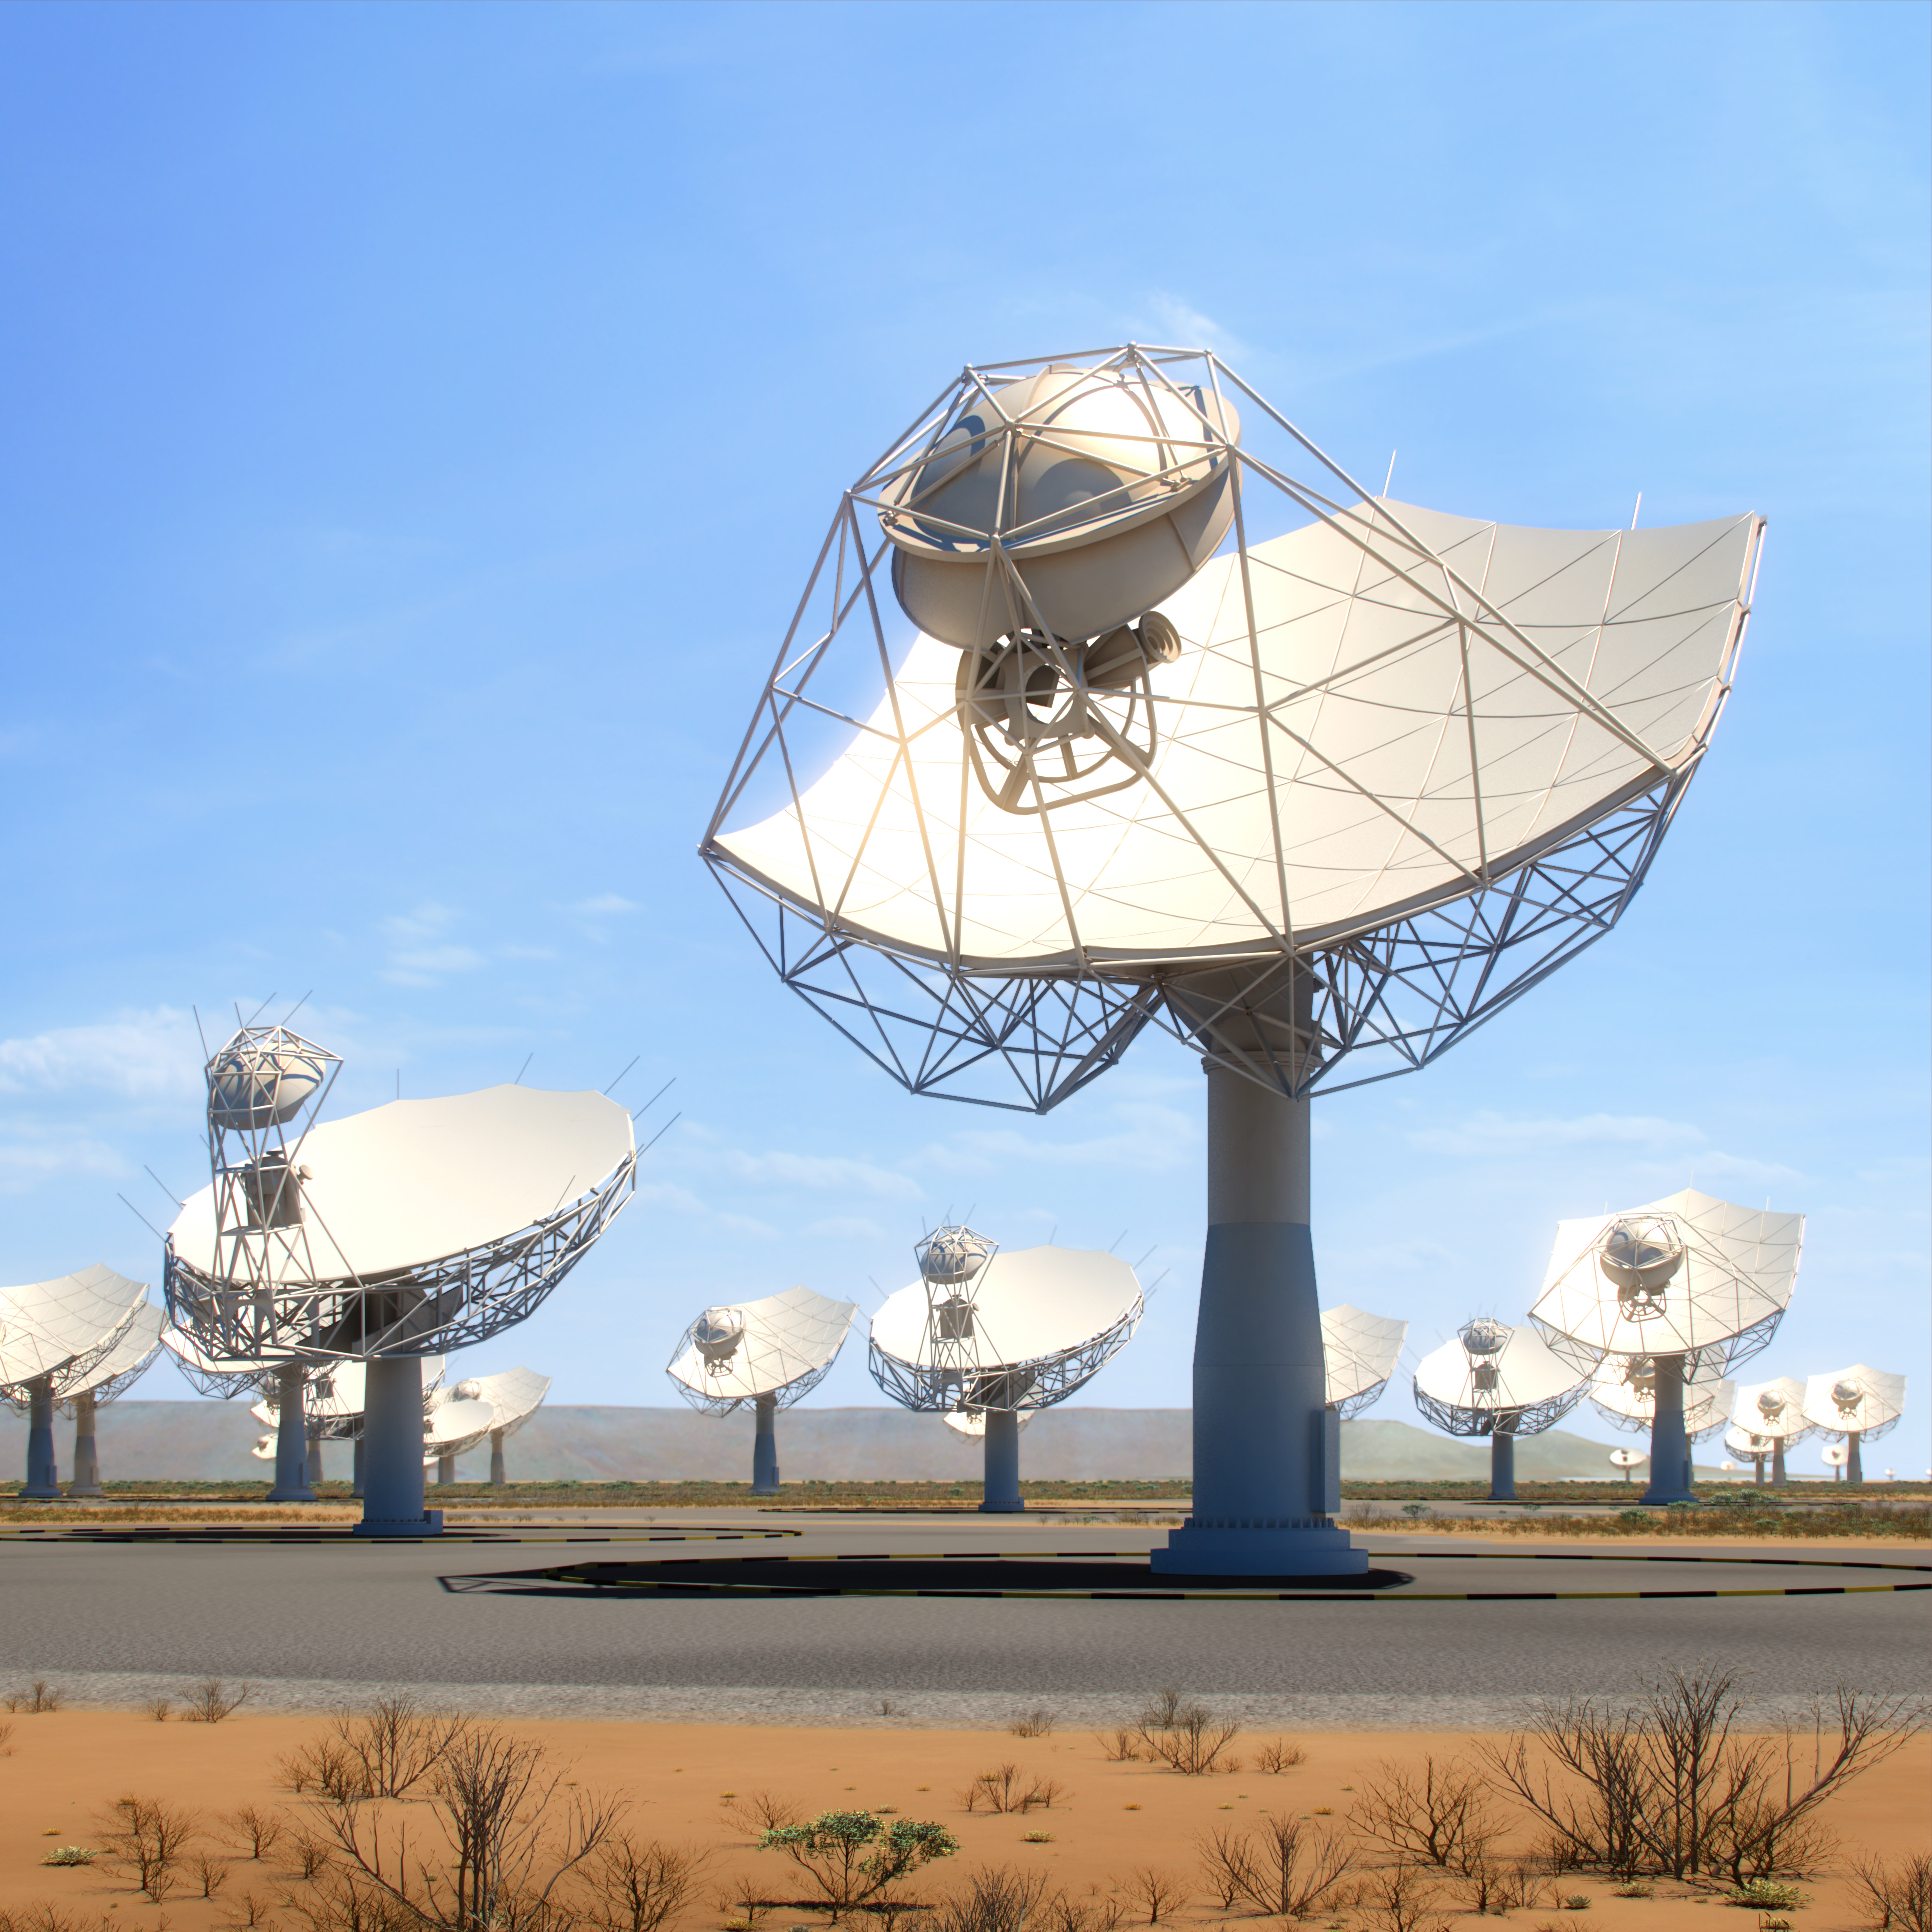 Closeup view of the SKA dishes and MeerKAT dishes in South Africa. Credit: SKA Organisation